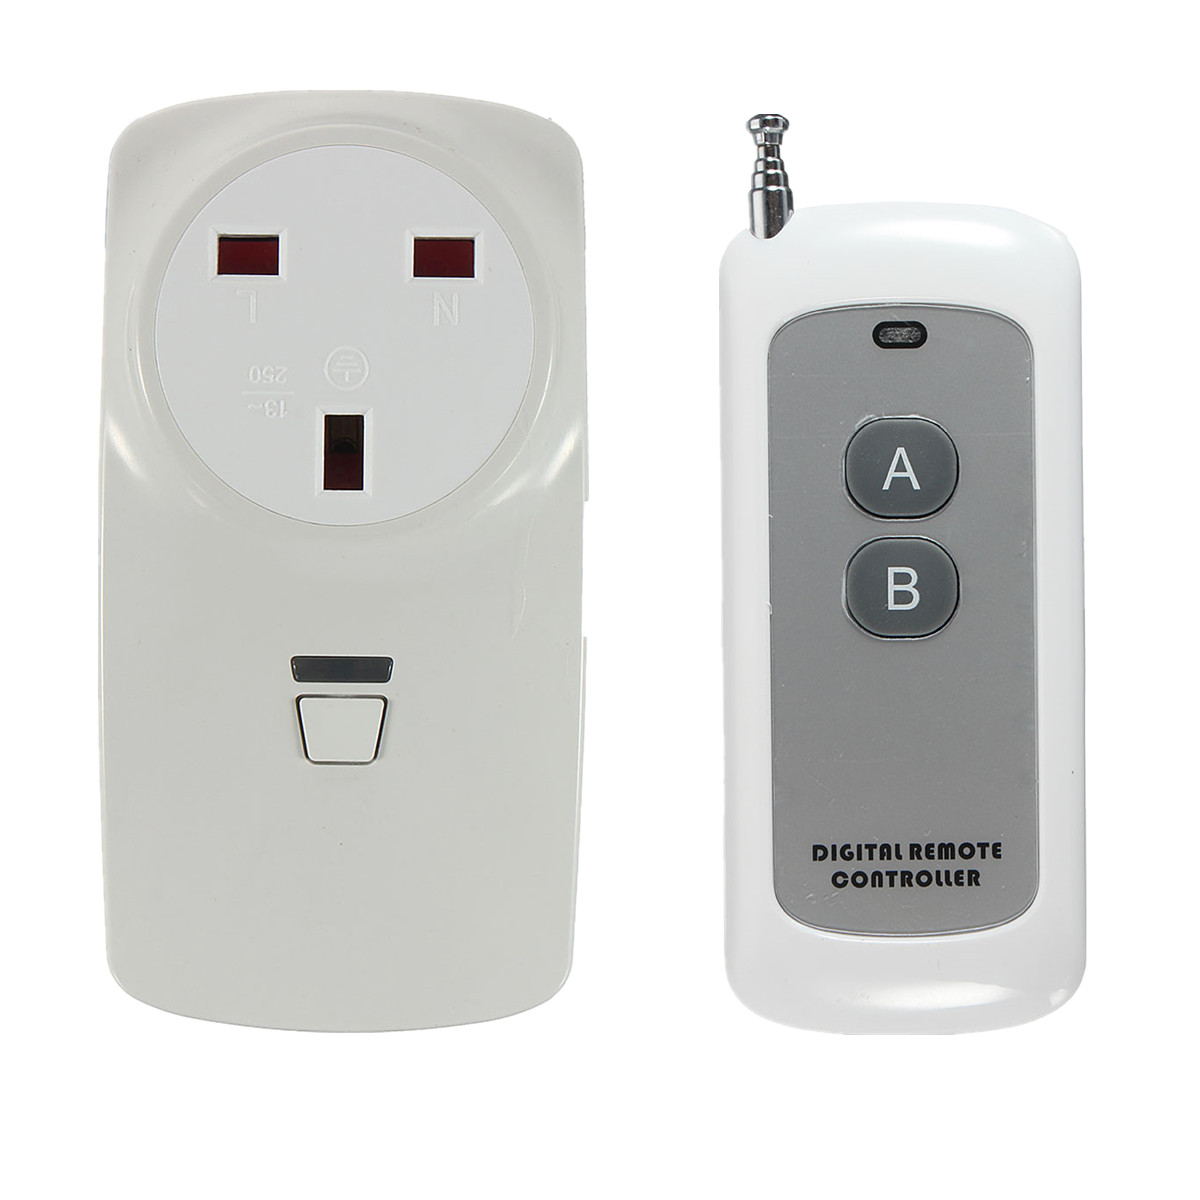 NEW Safurance Wireless Plug-In Power Socket Timer Switch Outlet Receiver With Remote Control Building Automation 3 pack wireless remote control power outlet switch plug socket infrared heater panel wireless socket